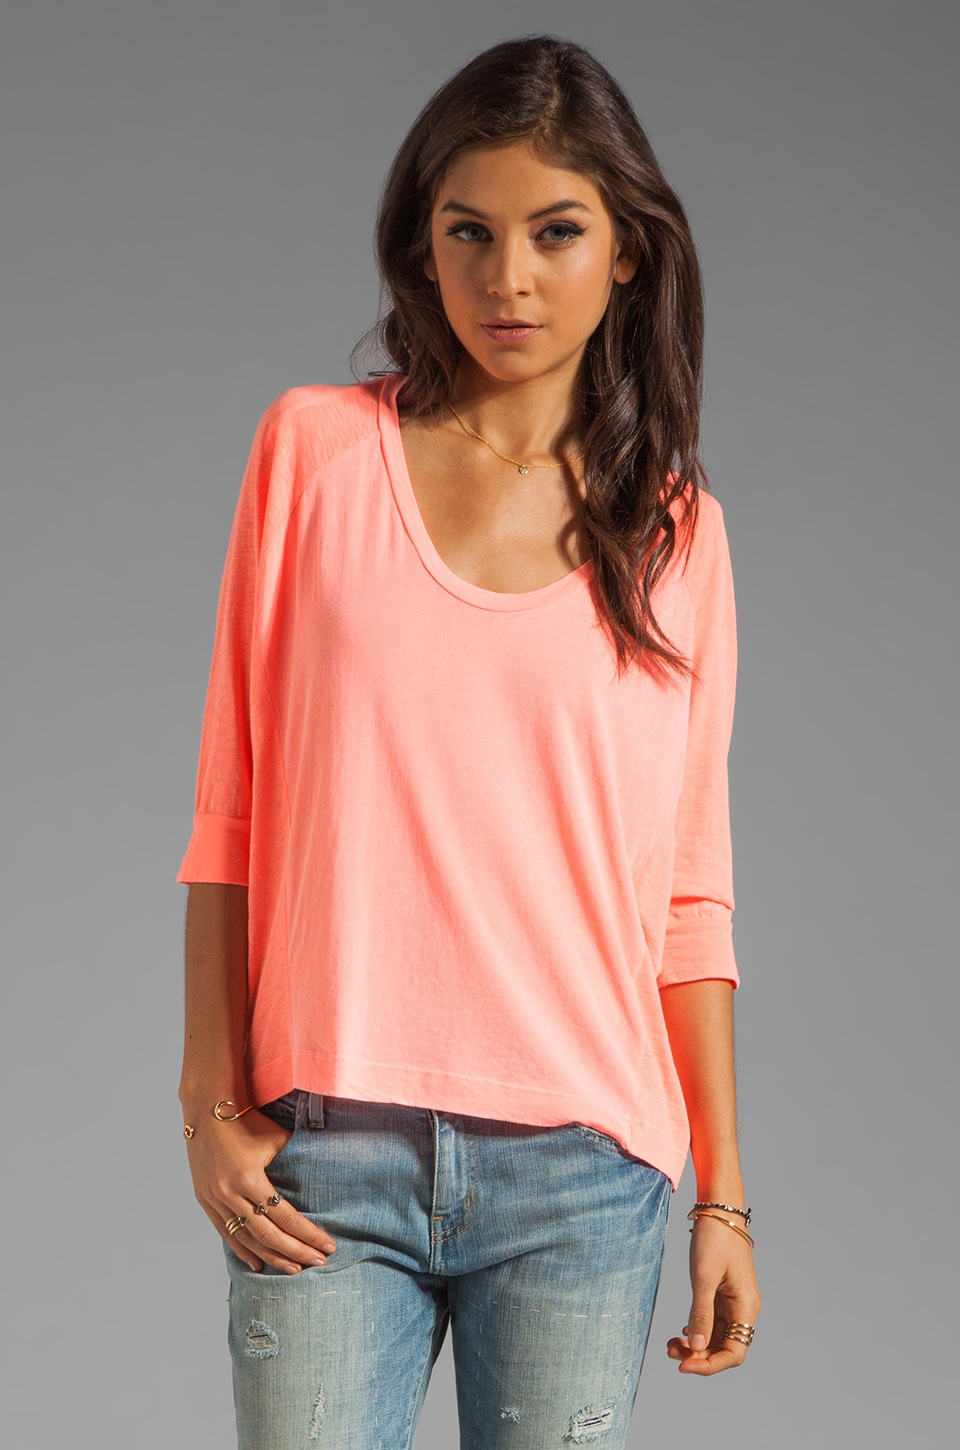 Splendid Vintage Whisper Long Sleeve Top in Neon Coral